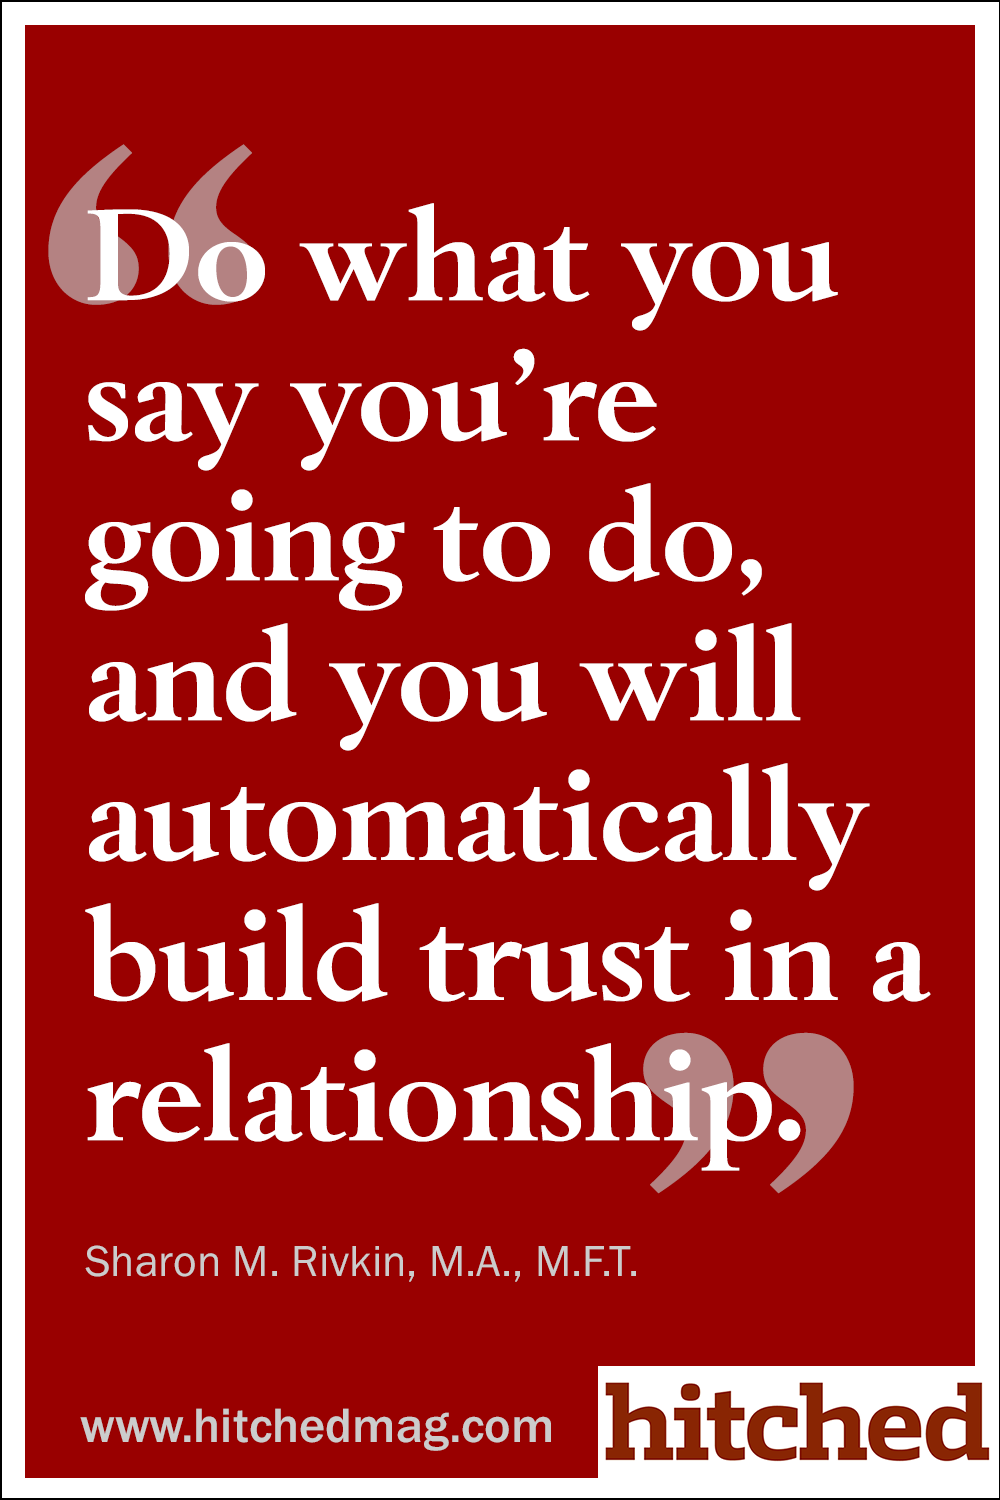 3 ways to gain trust a relationship